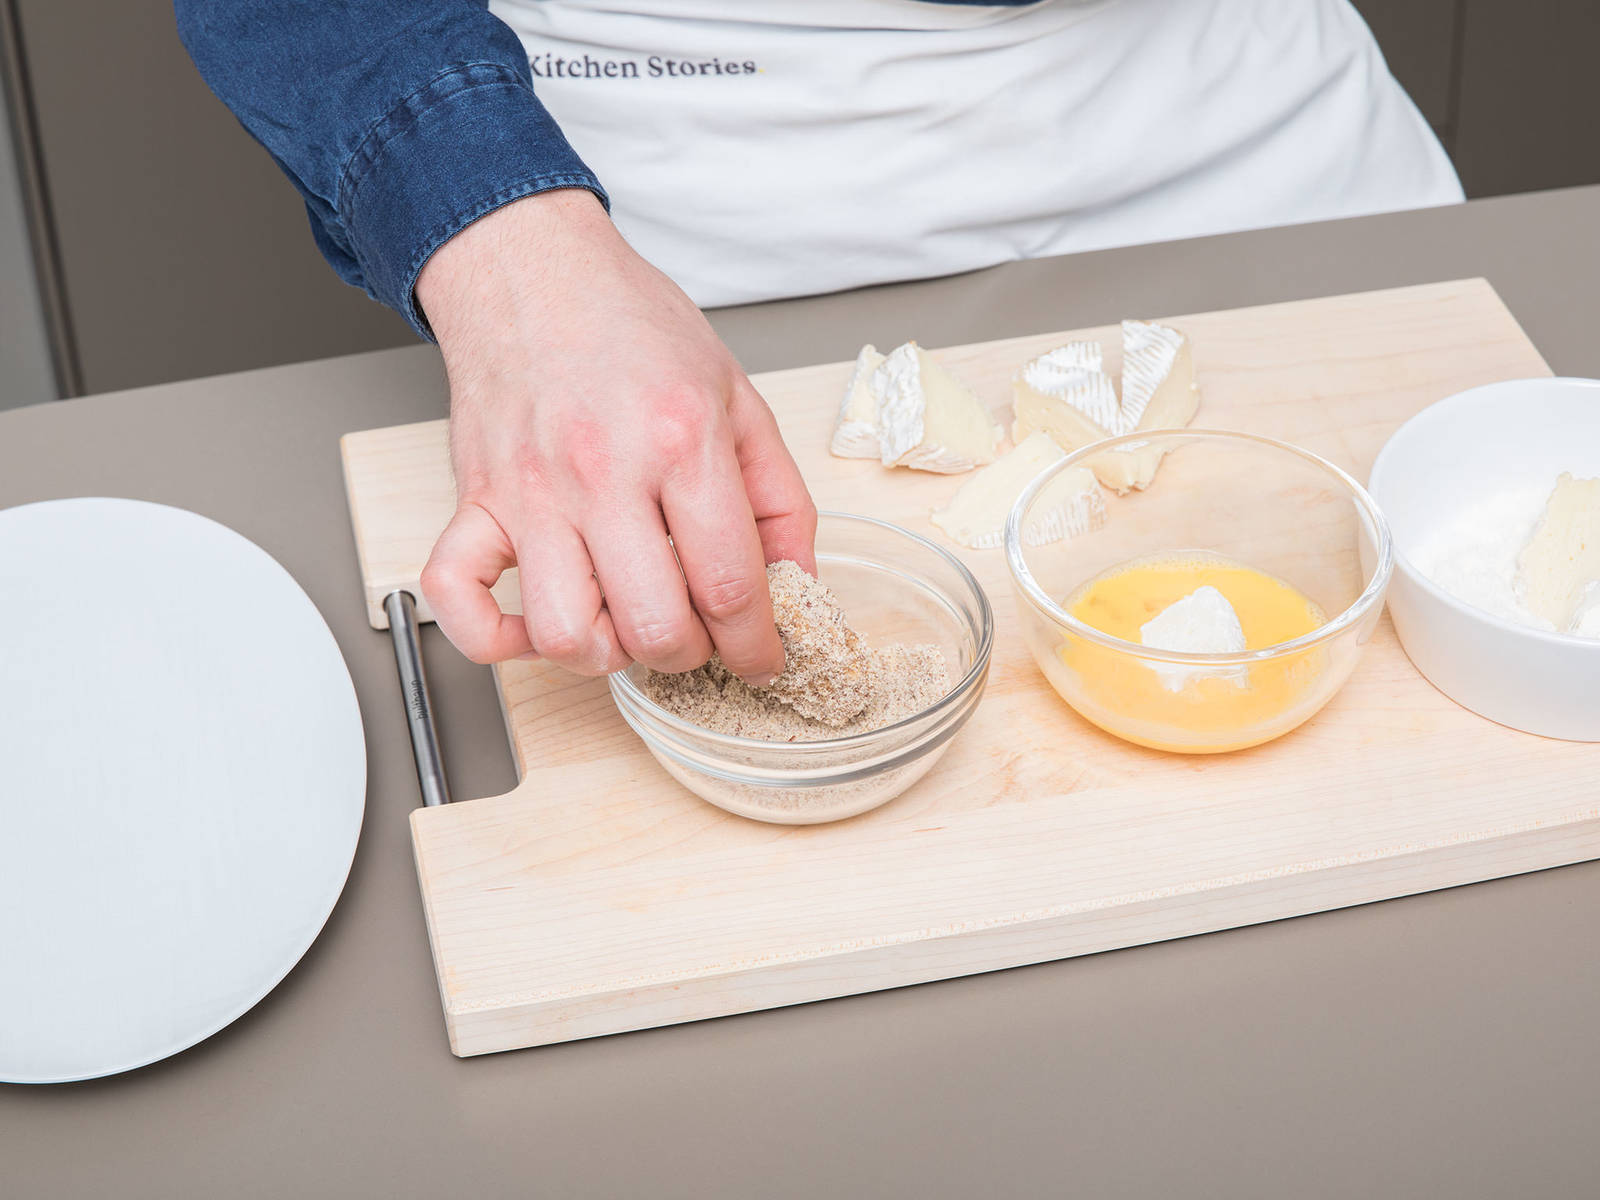 Add ground hazelnuts and breadcrumbs to a small bowl and stir to combine. Whisk egg in a second bowl and add flour to a third one. Cut camembert into equal-sized pieces and coat each piece first in flour, then dredge in egg and finally coat in hazelnut-breadcrumbs mixture.